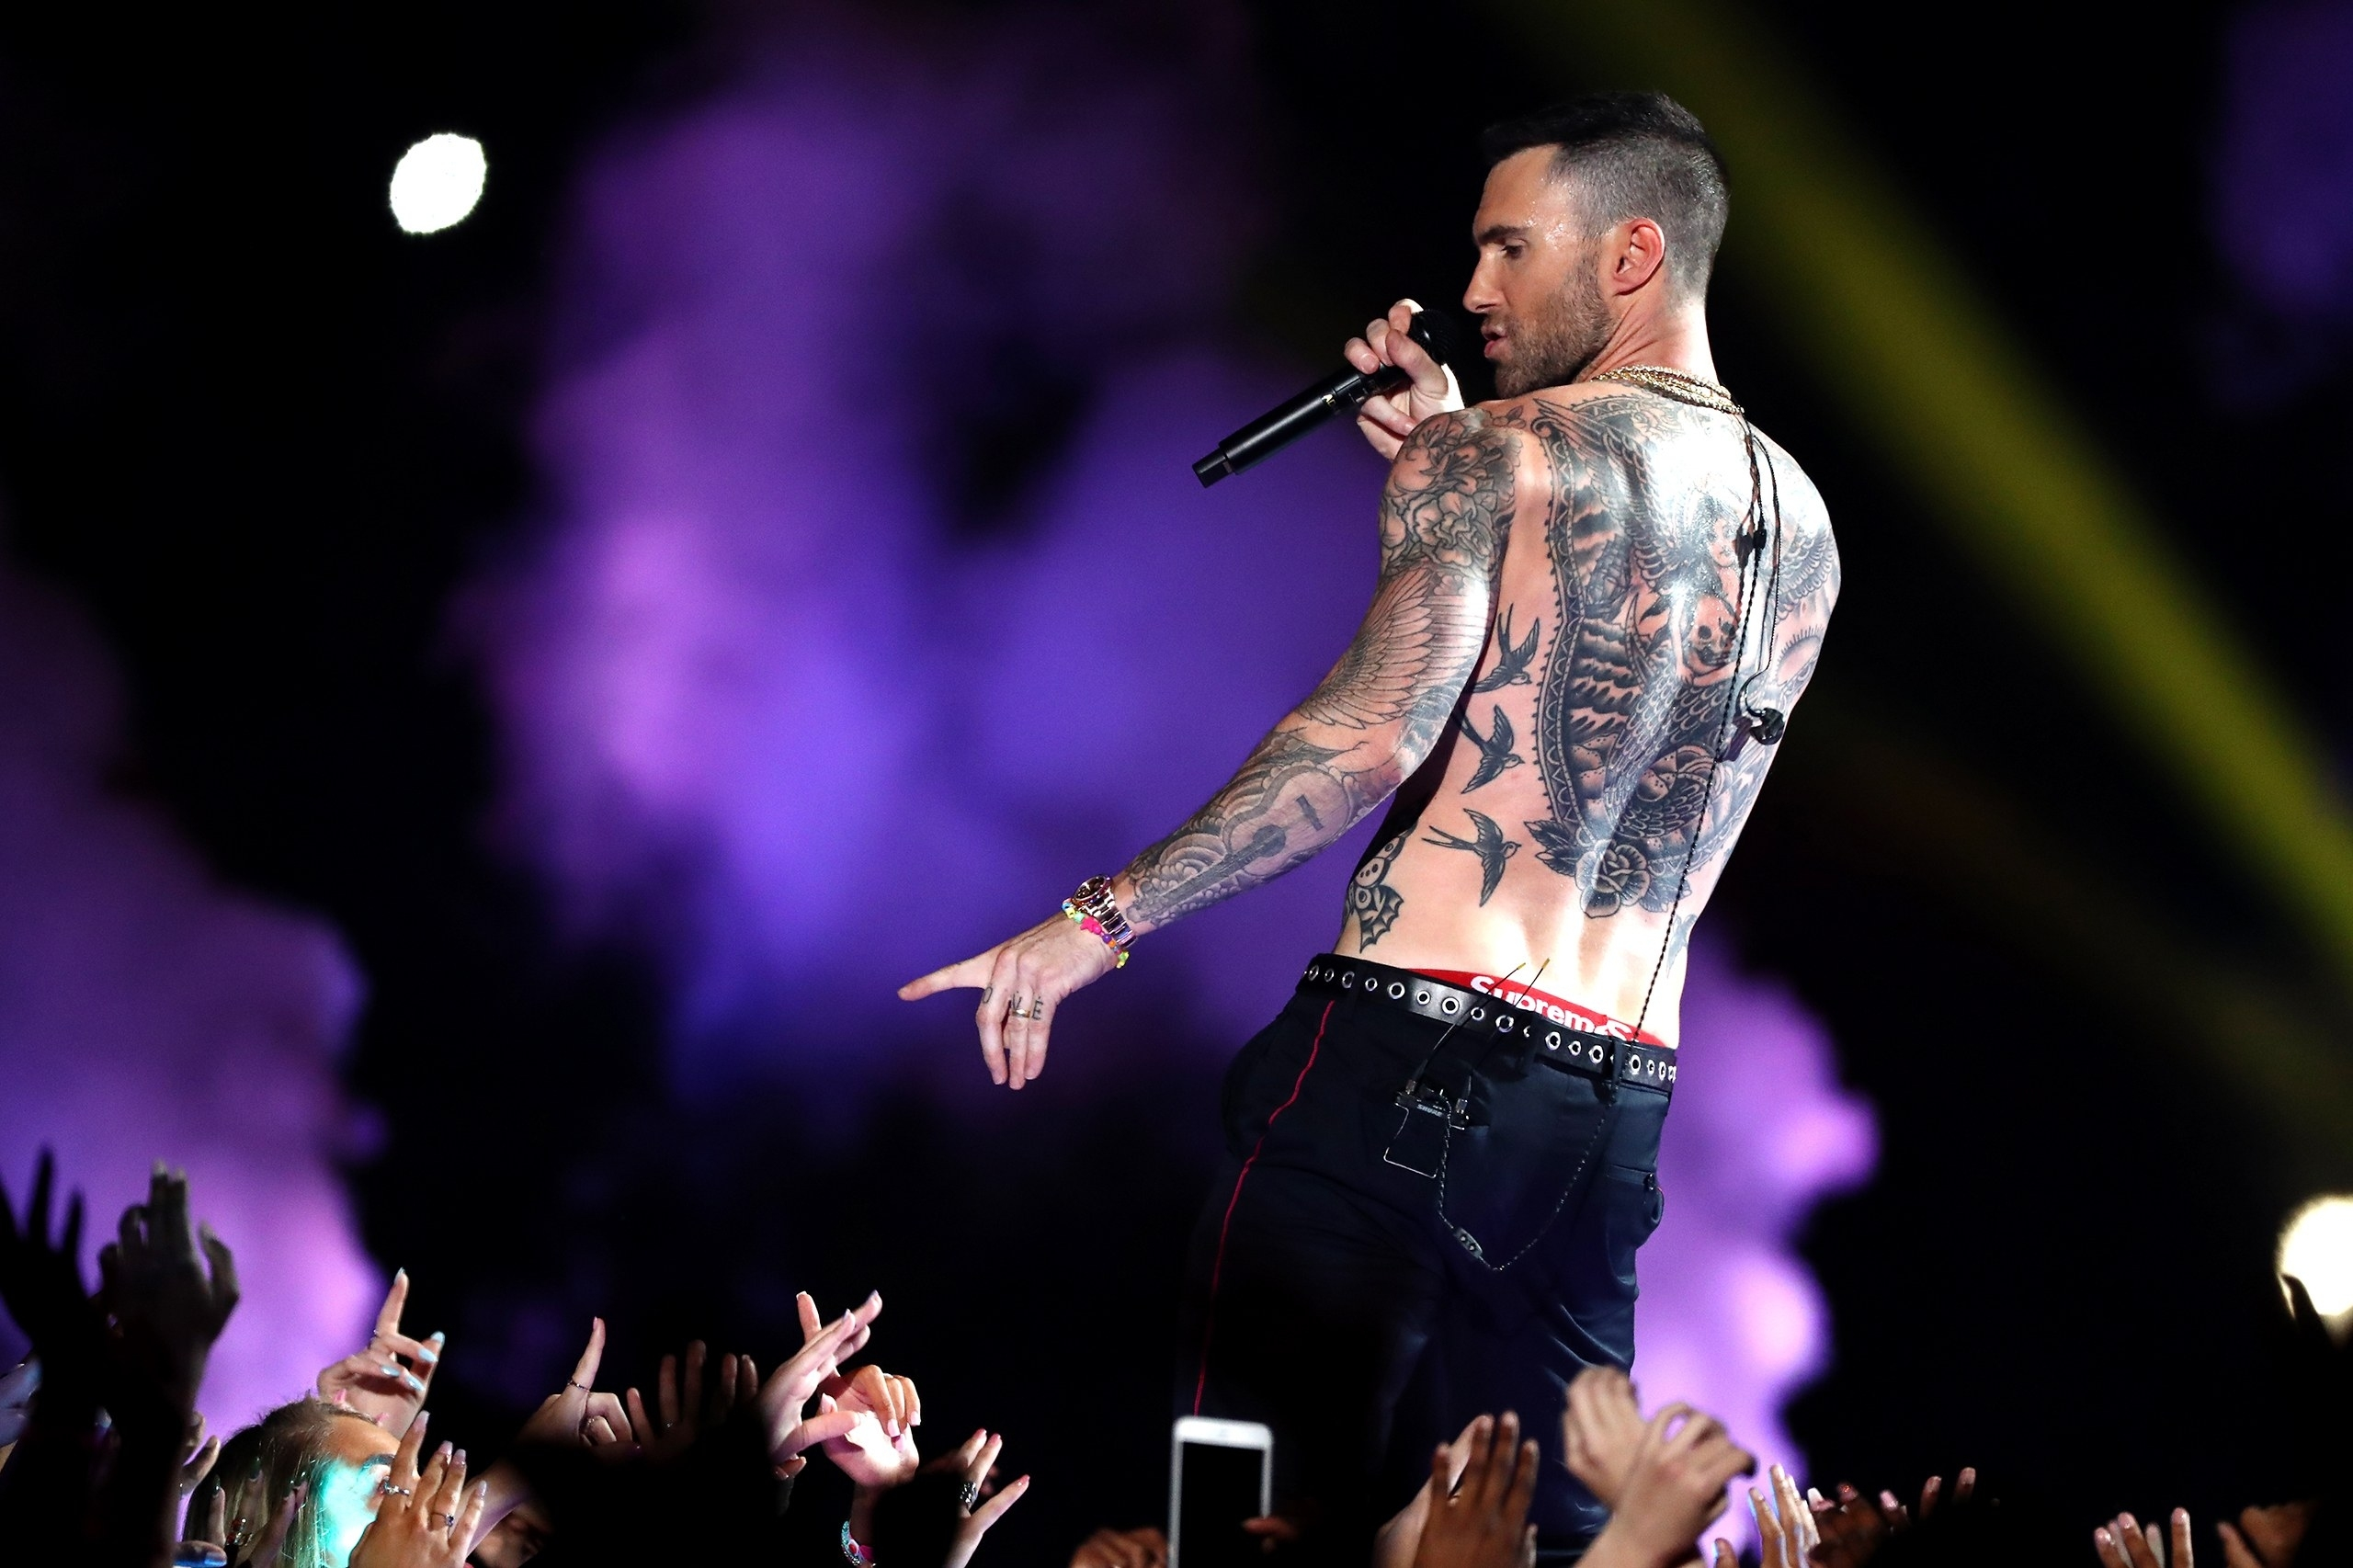 The Artless Spectacle Of Maroon 5 At The Super Bowl | The intended for Maroon Five Super Bowl